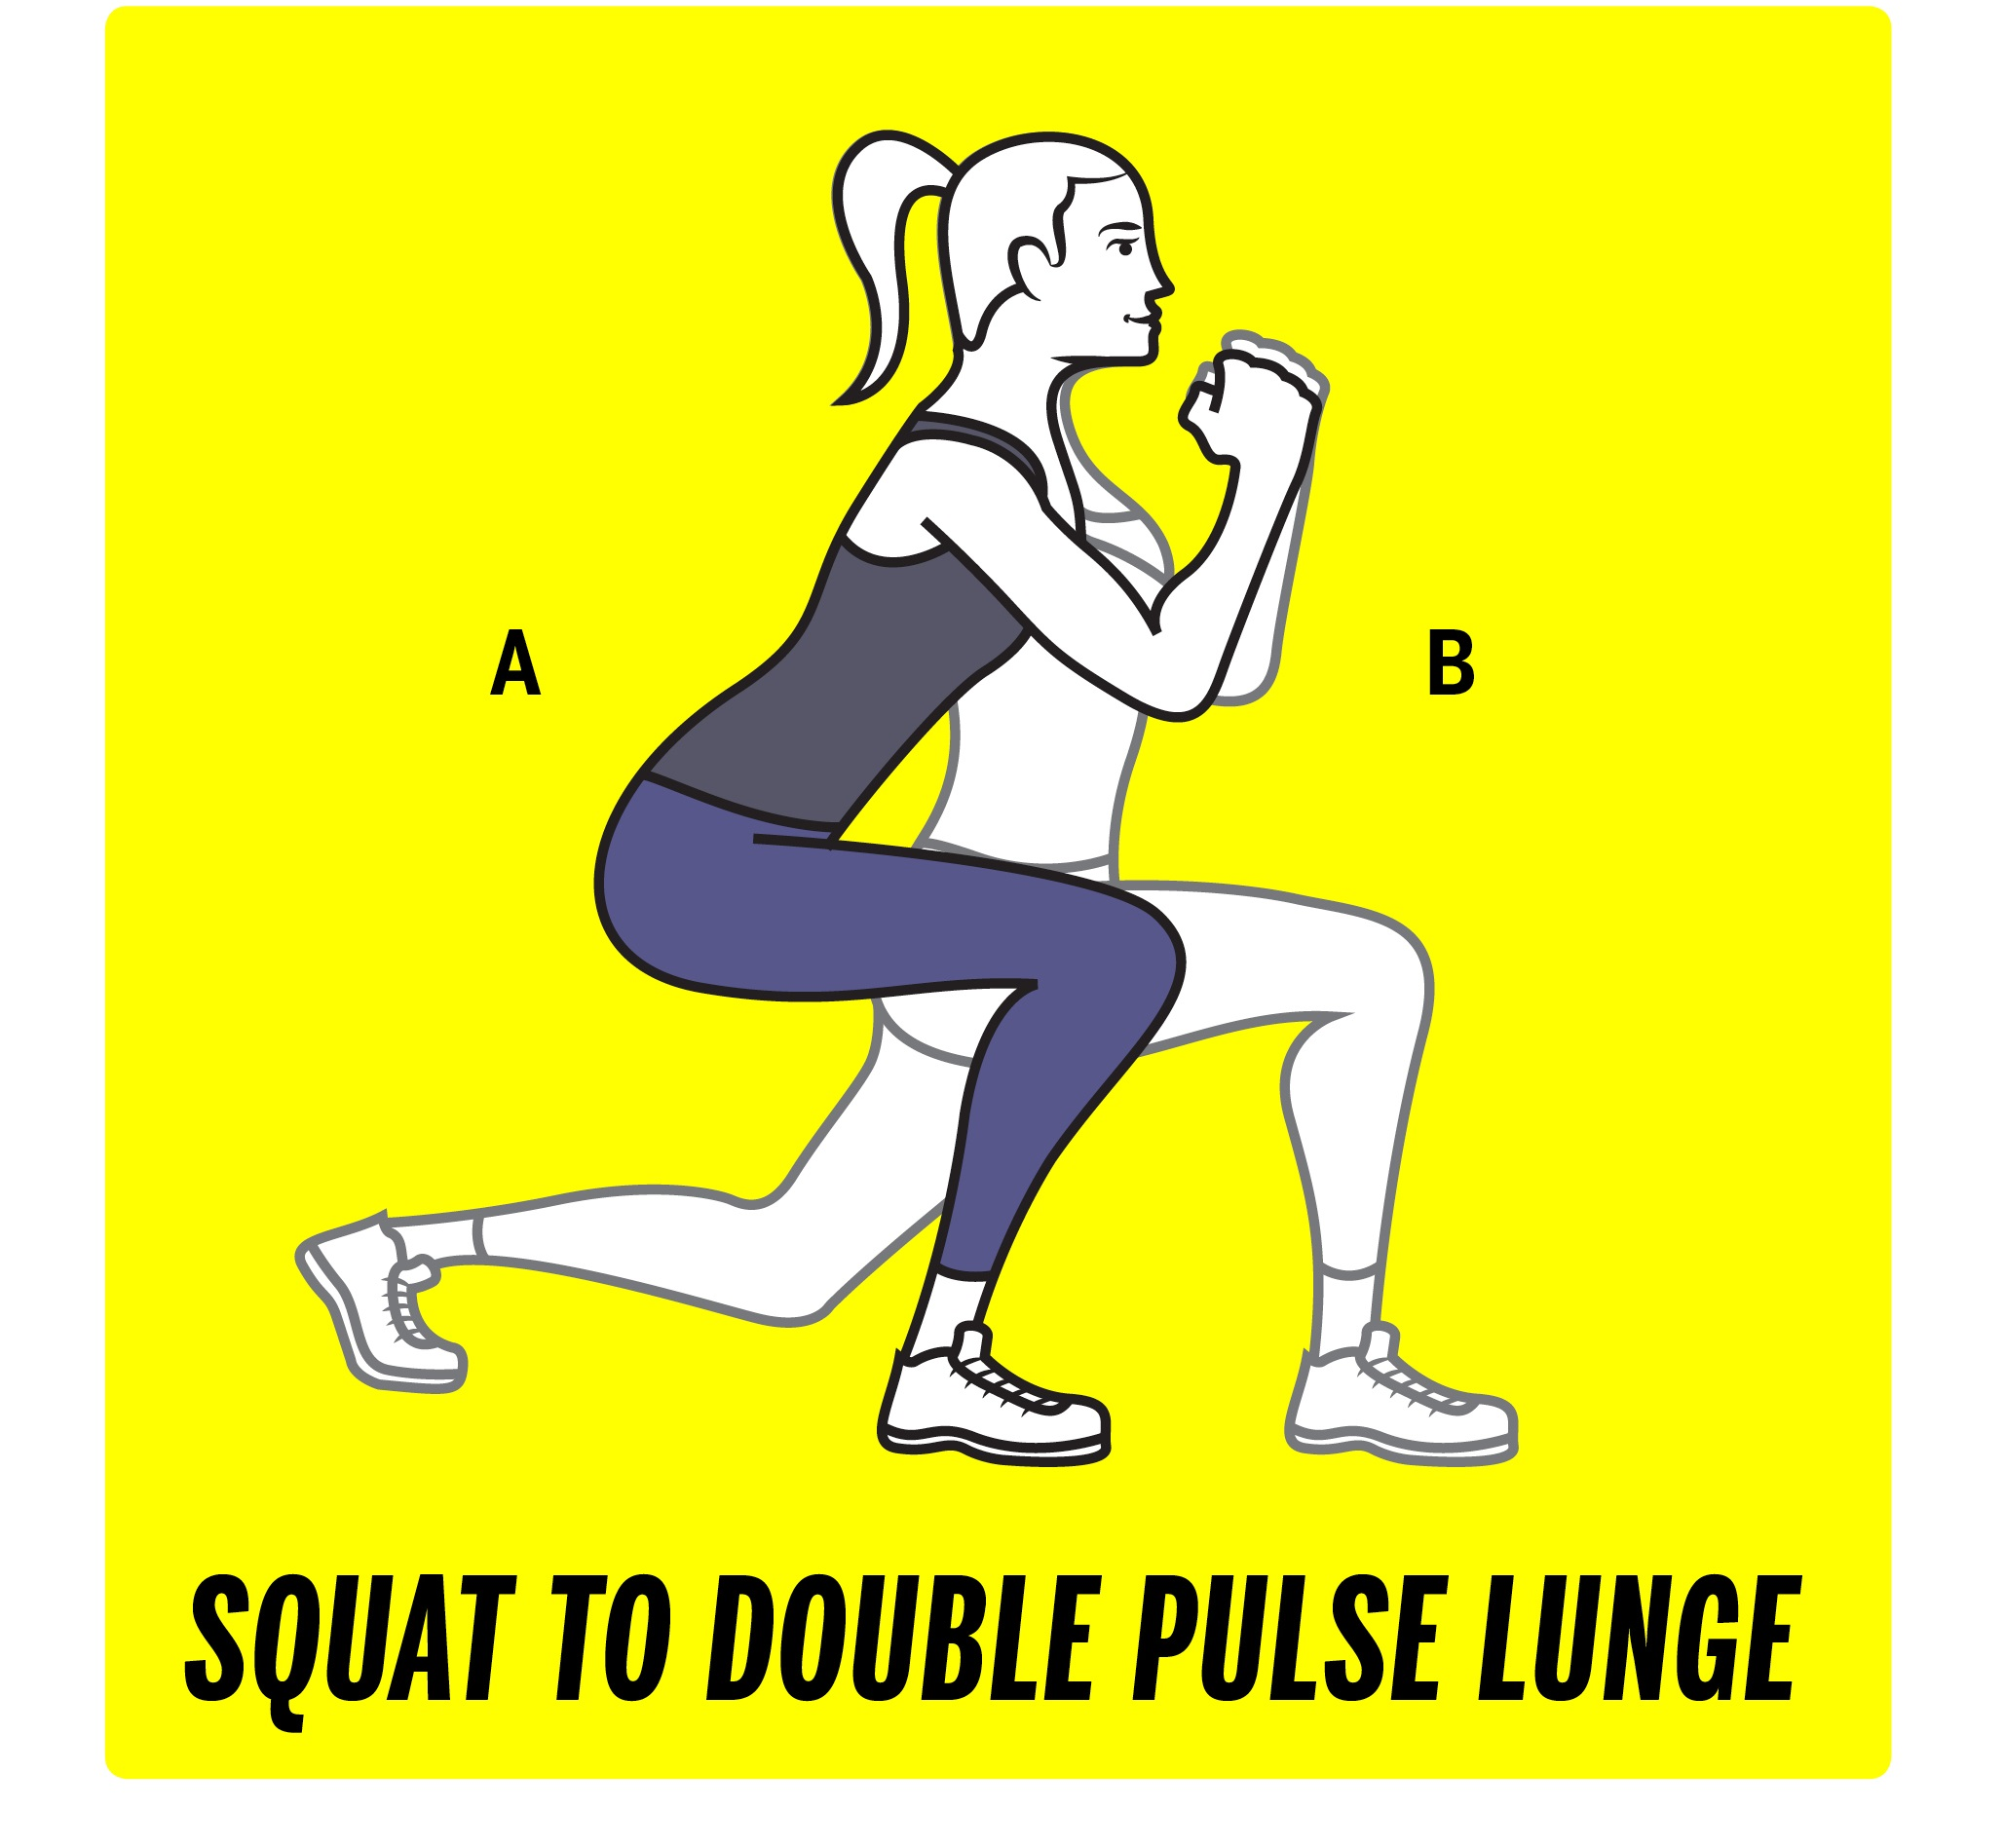 Squat to double pulse lunge